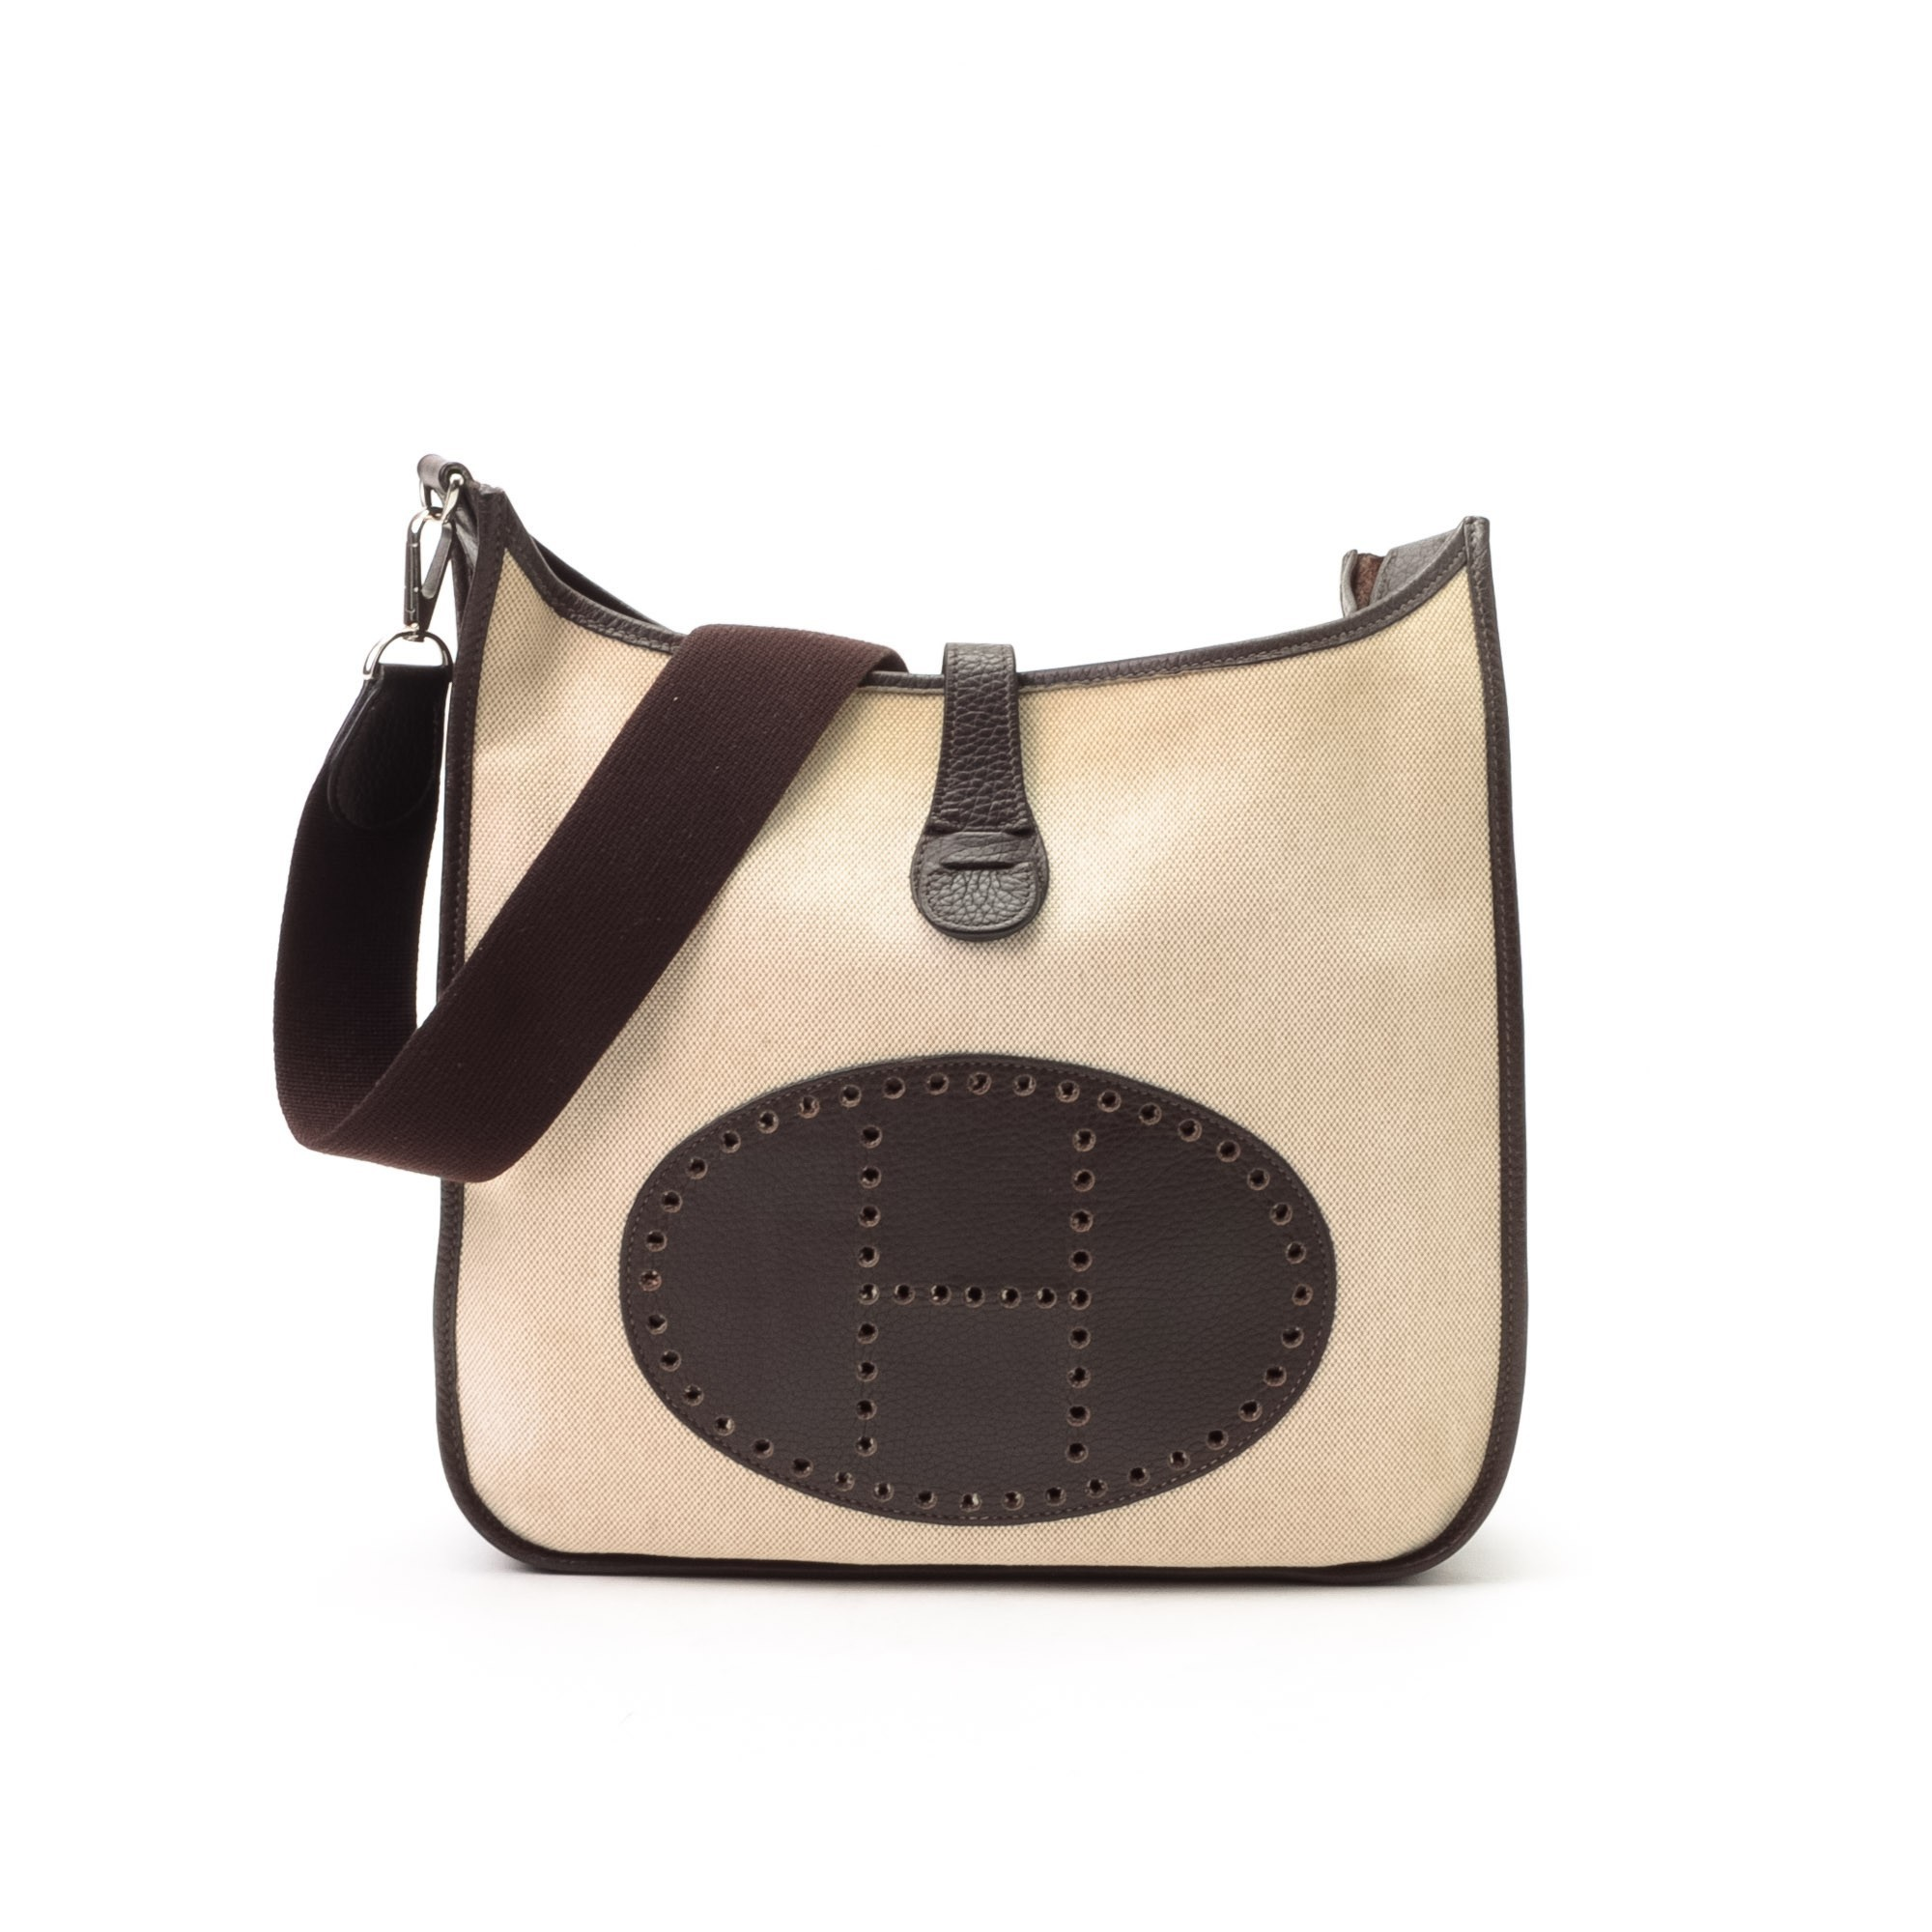 Herm¨¨s Hermes Evelyne Evelyne II PM Beige Canvas Shoulder Bag ...